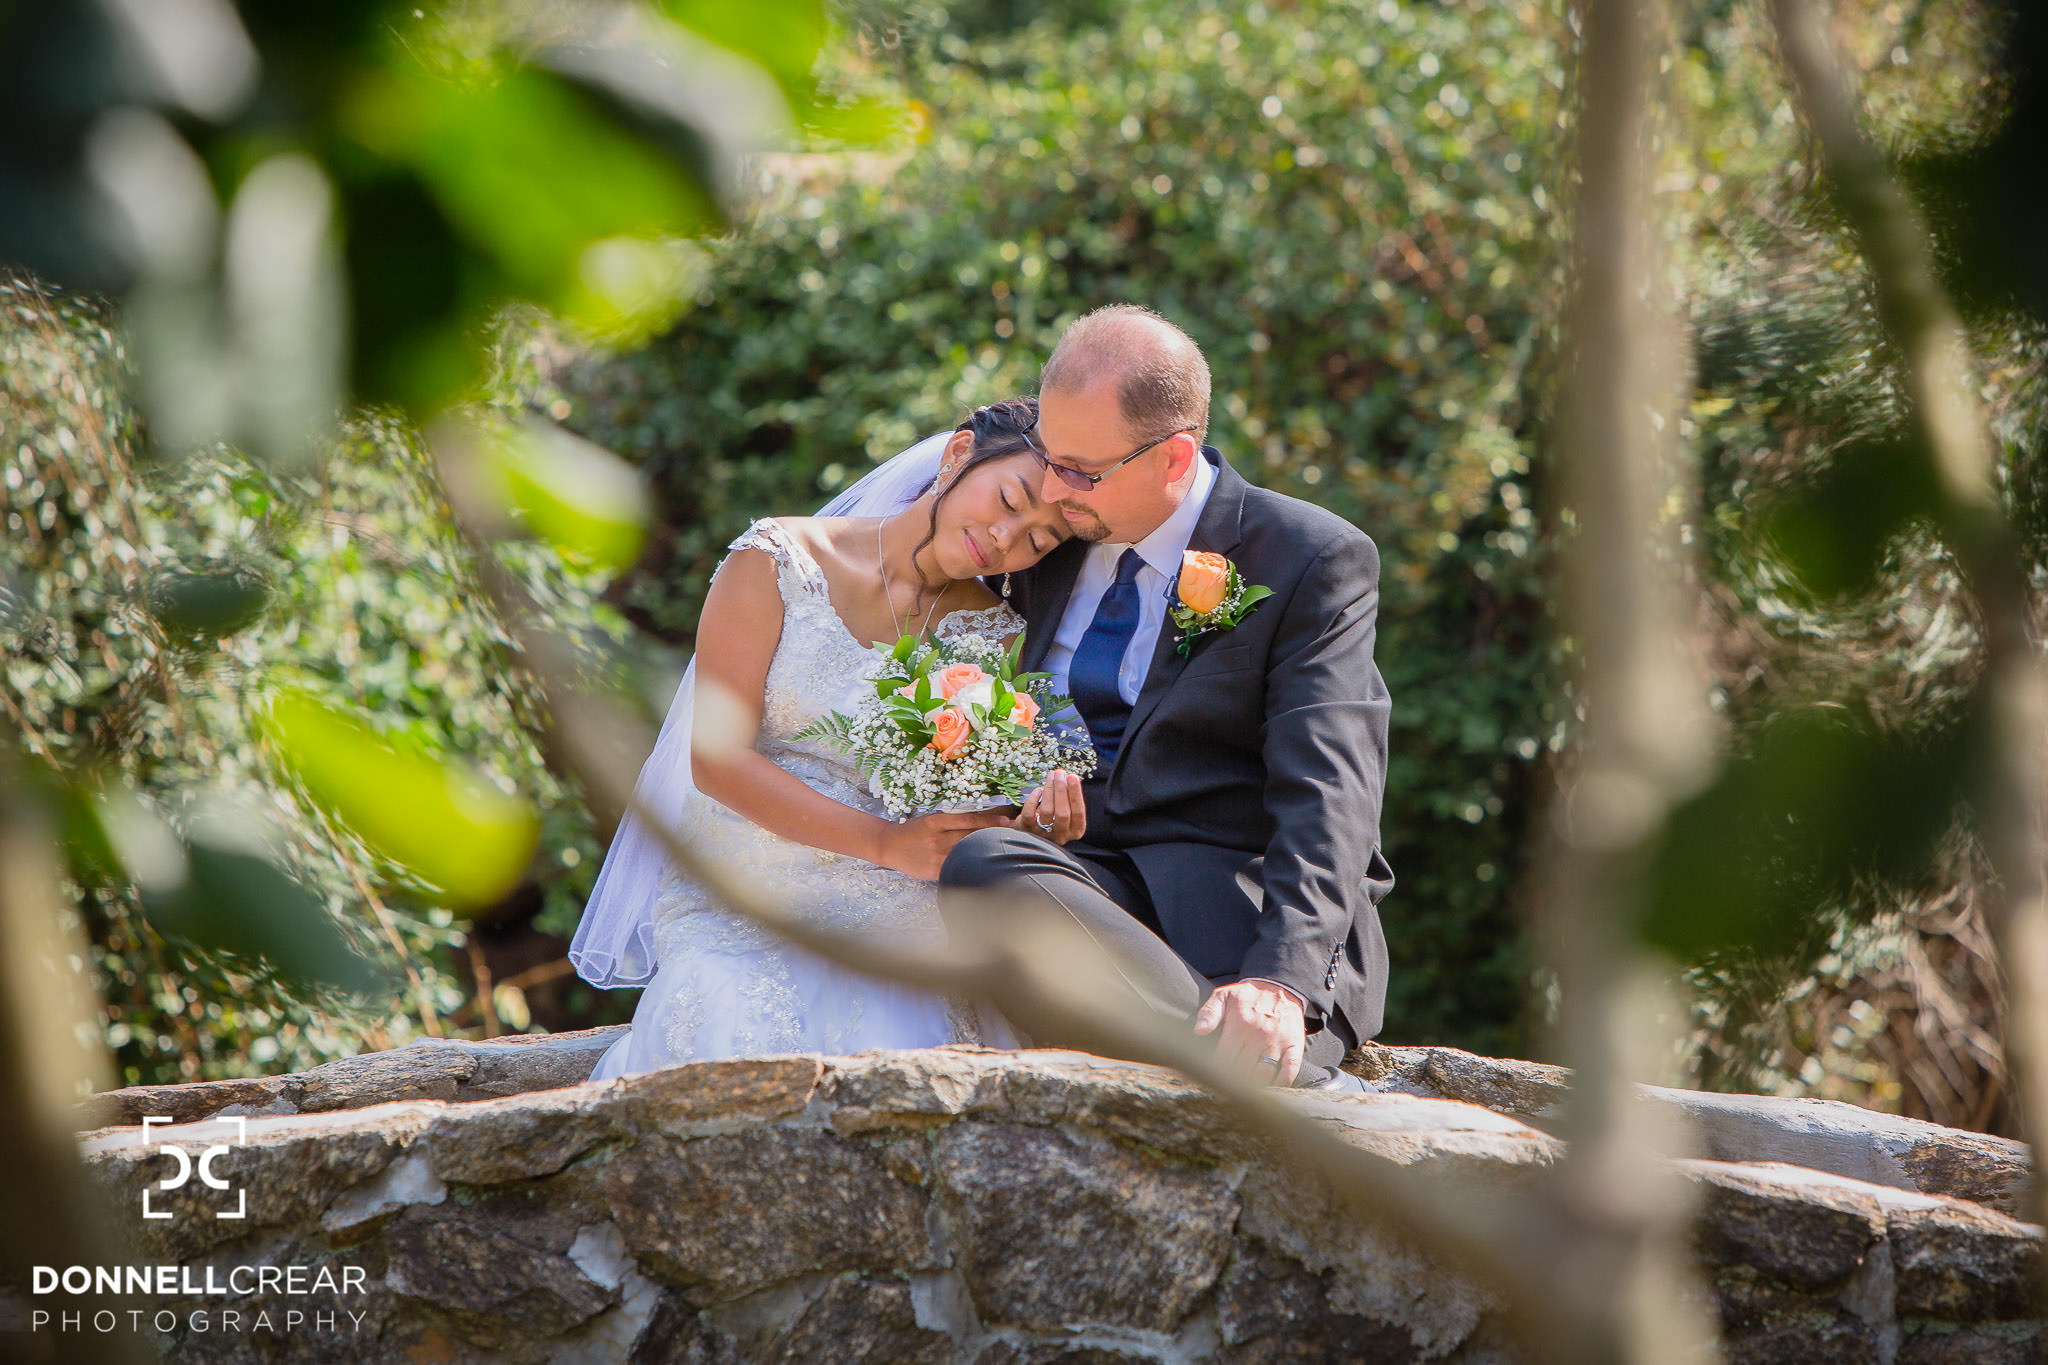 Charming Rock Quarry Garden Wedding | Joy + Greg